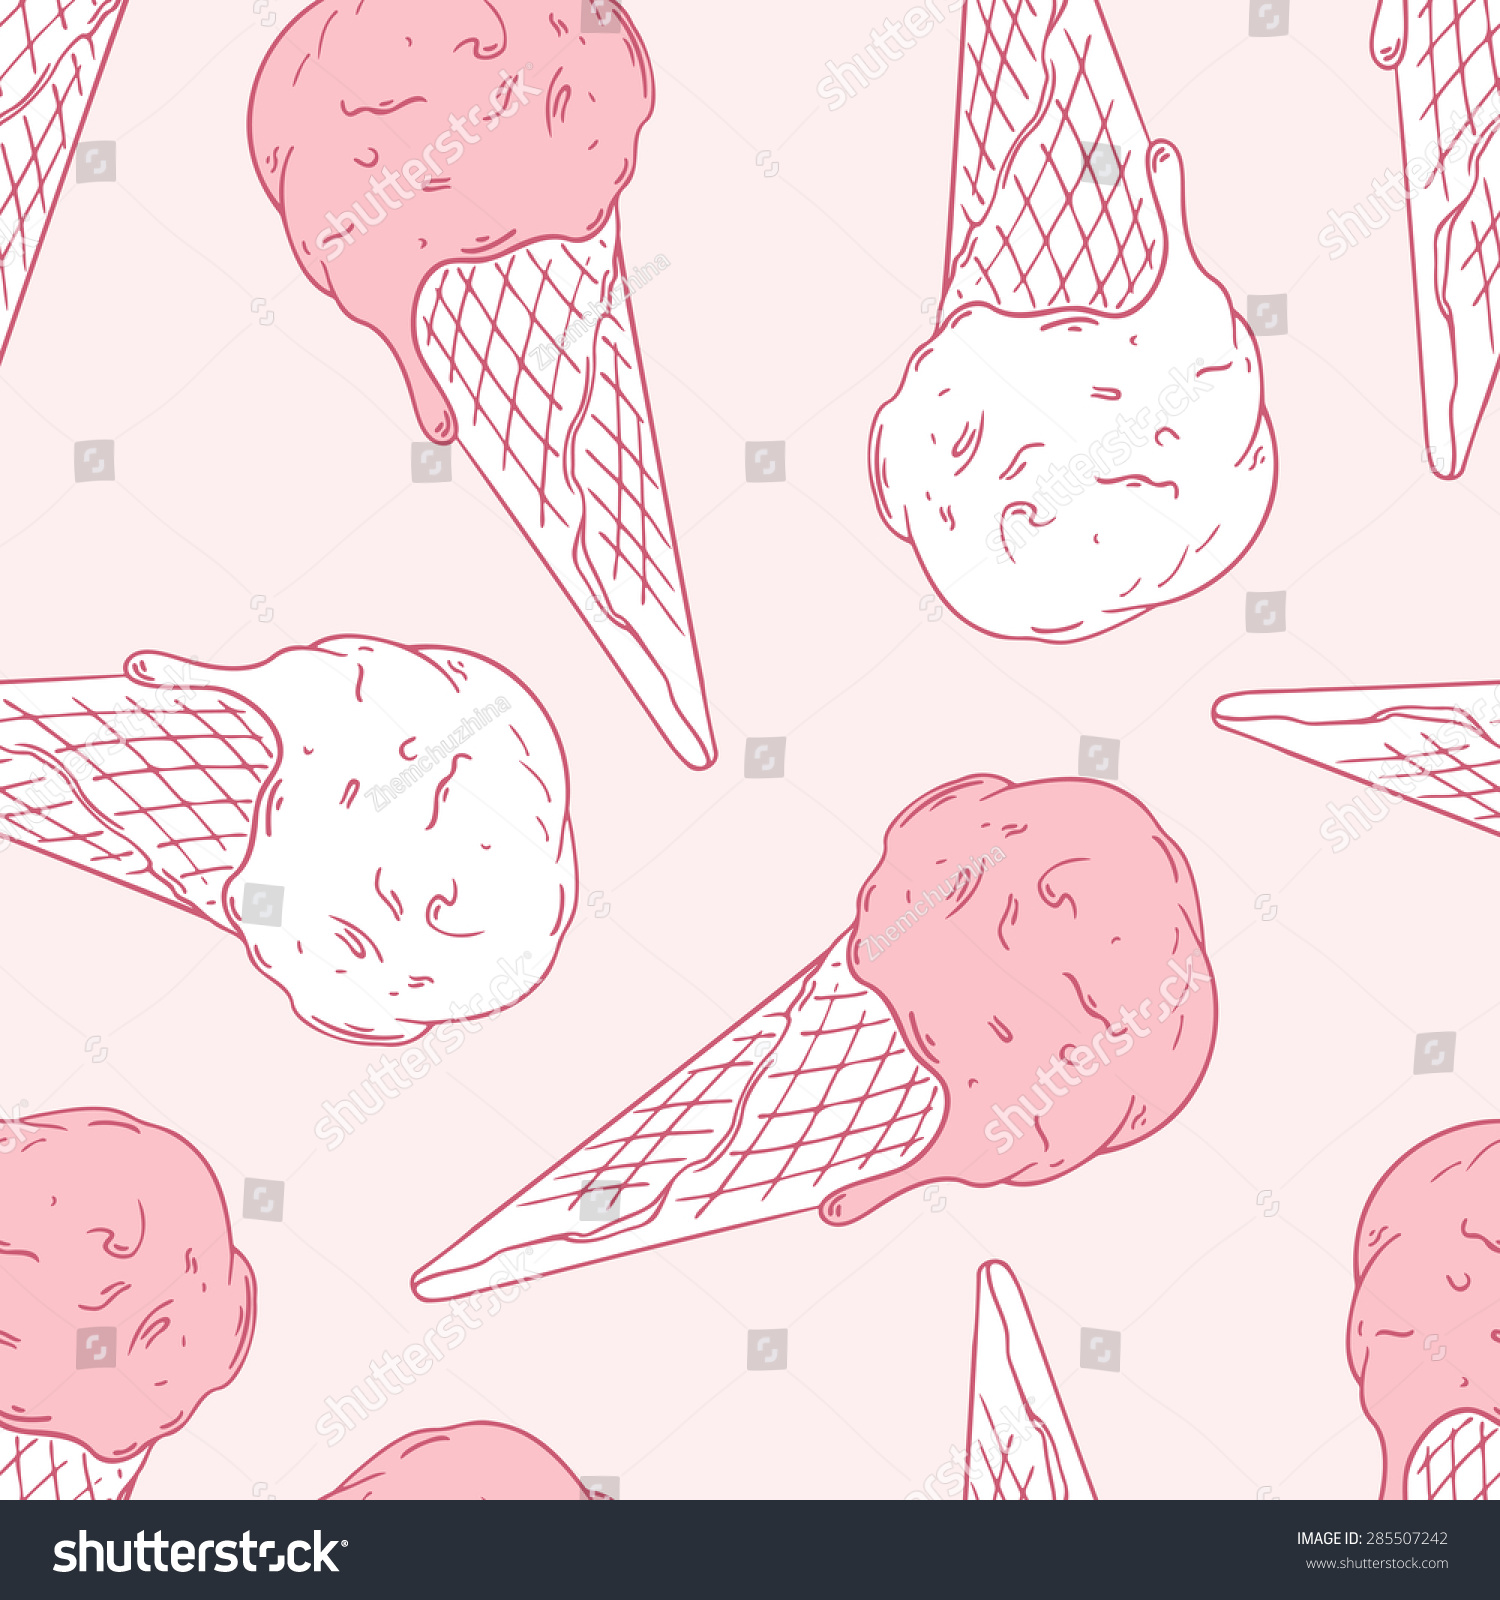 Ice Cream Cones Seamless Pattern Background Stock Vector: Hand Drawn Ice Cream In A Waffle Cone. Outline Seamless